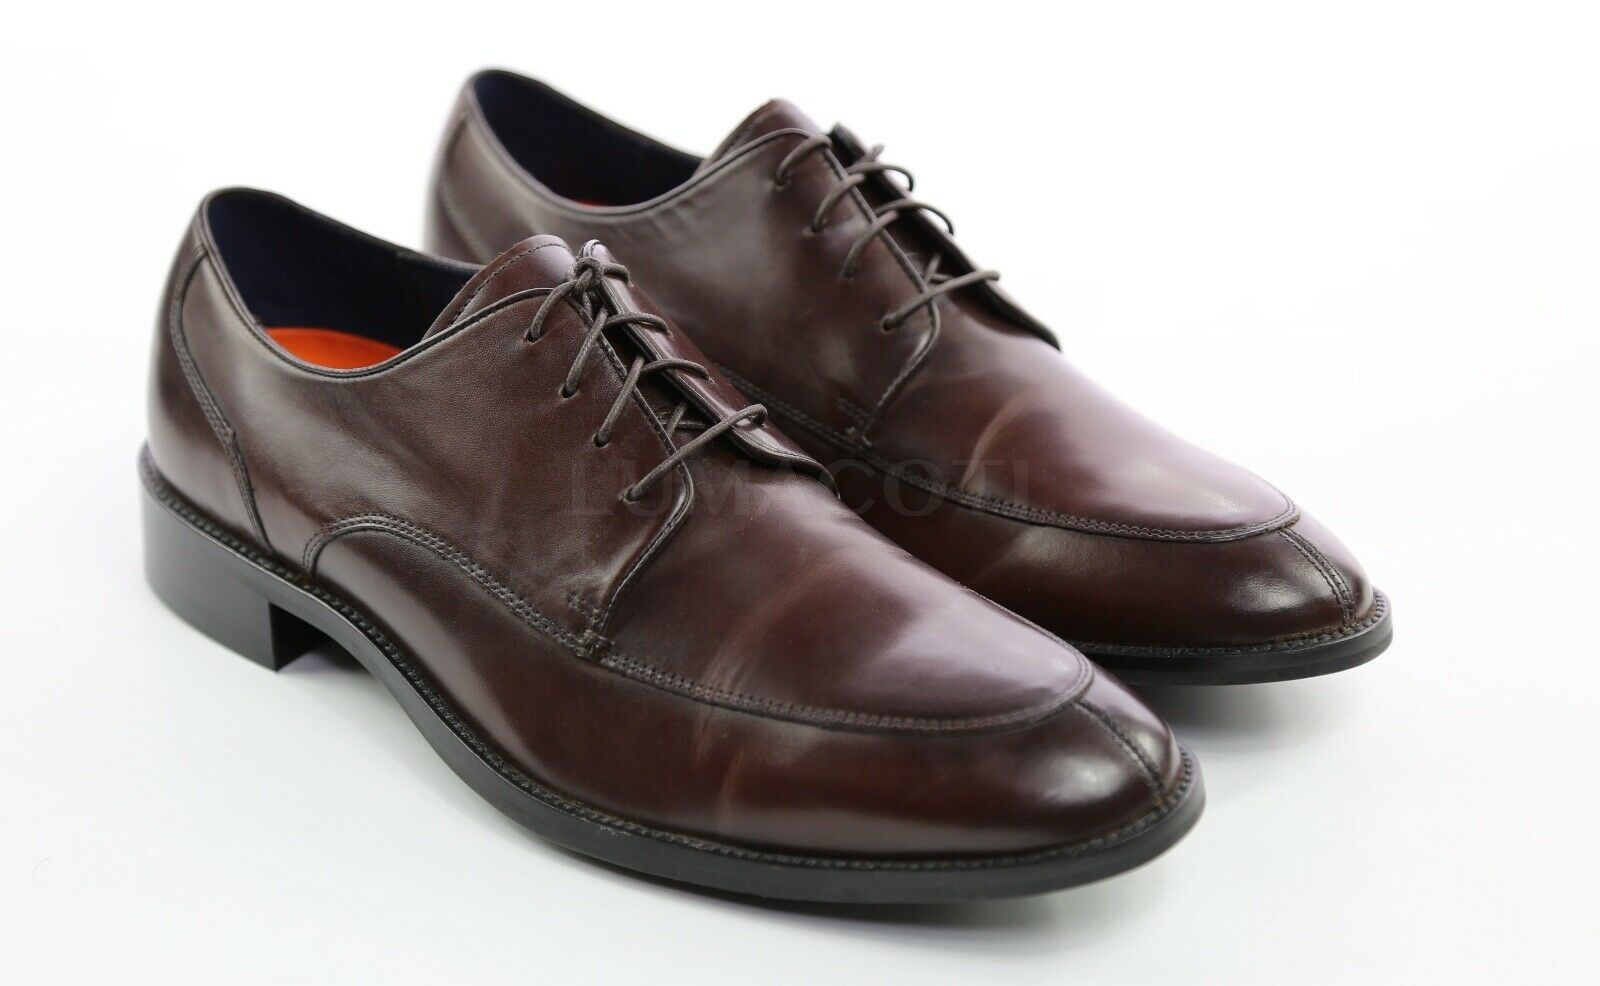 Mens Cole Haan Lenox Hill Split Toe Oxfords - Dark Brown Size 10.5 [CH11628]